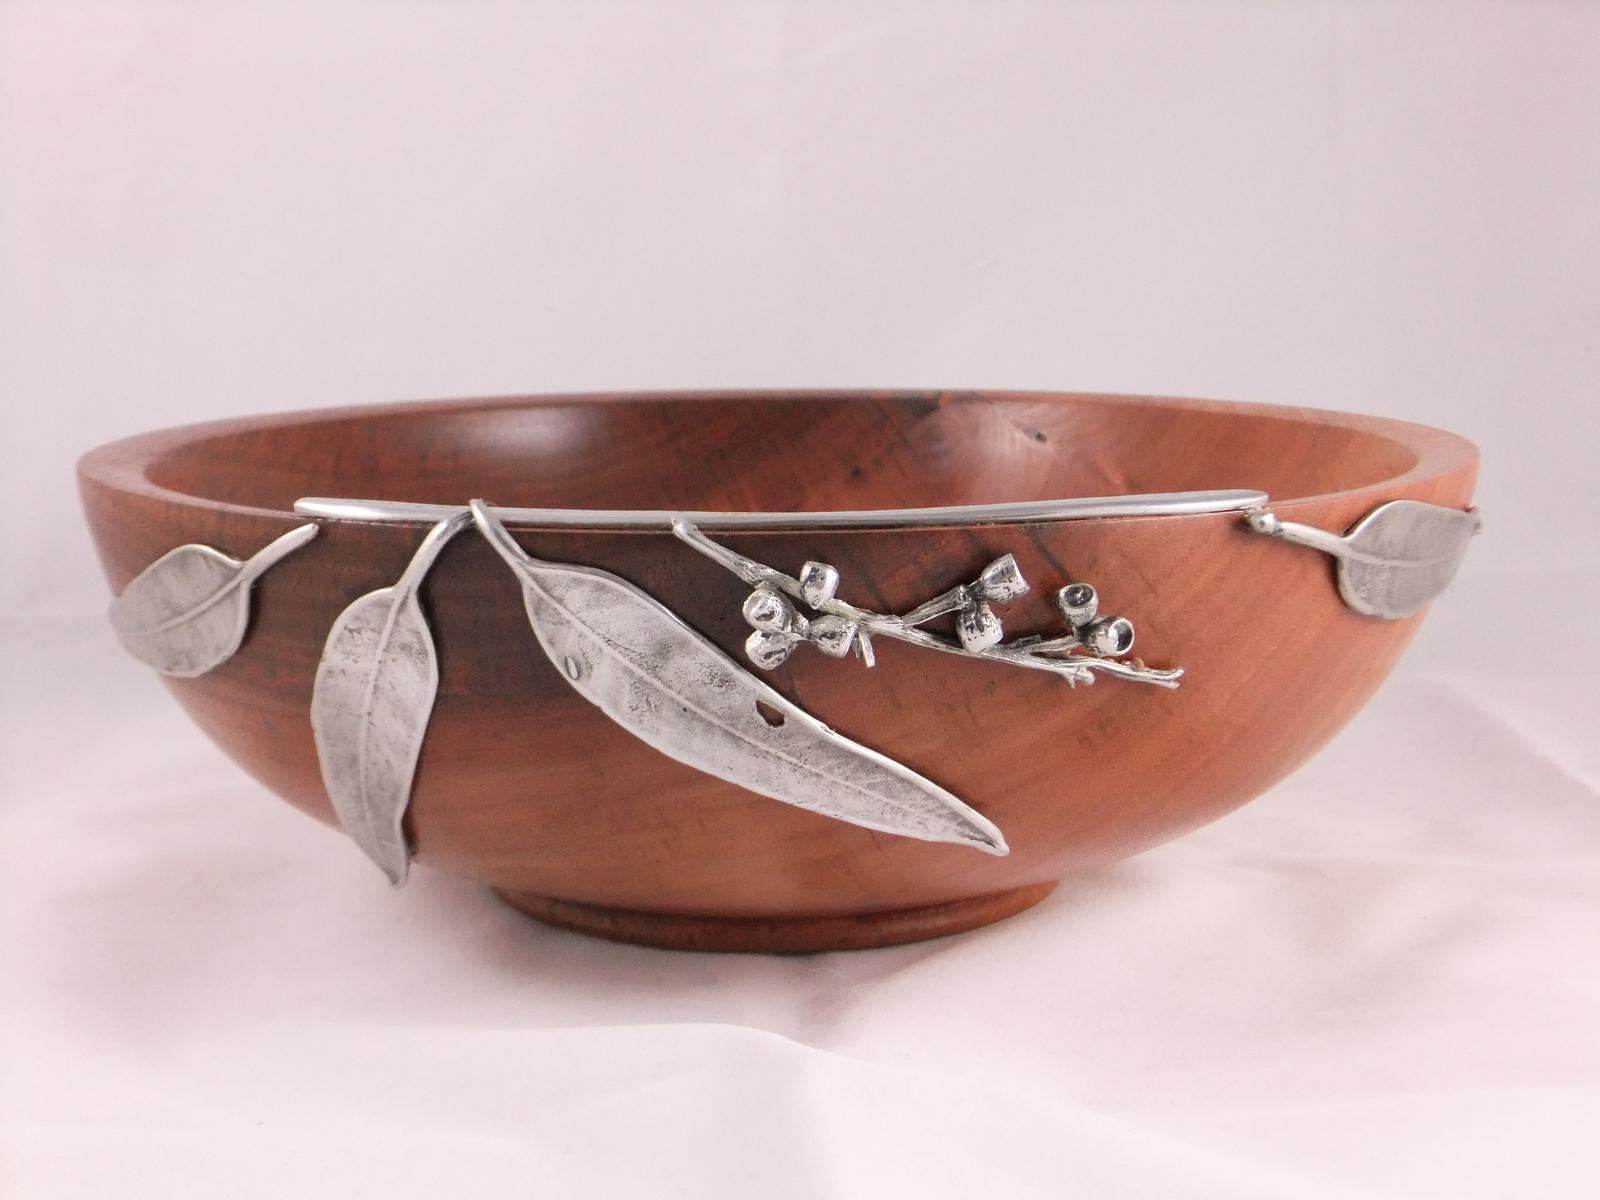 Bowls with Pewter decoration